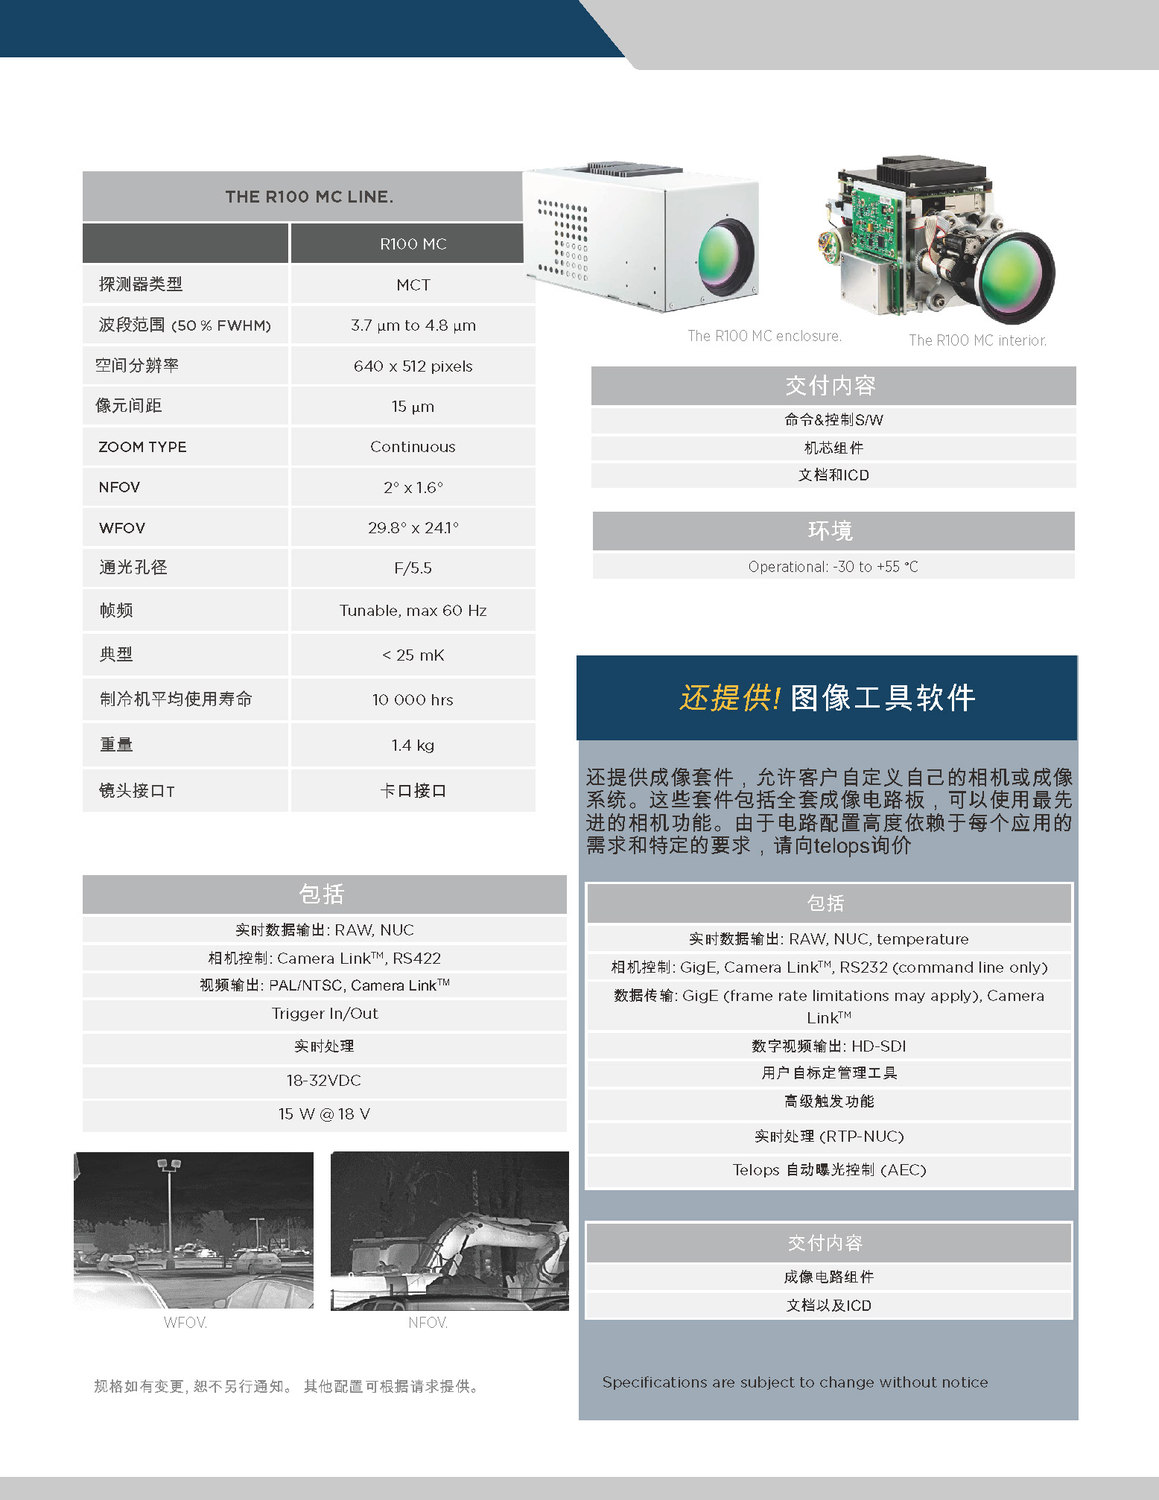 2020 Camera Modules Family - CHINA_页面_3.jpg